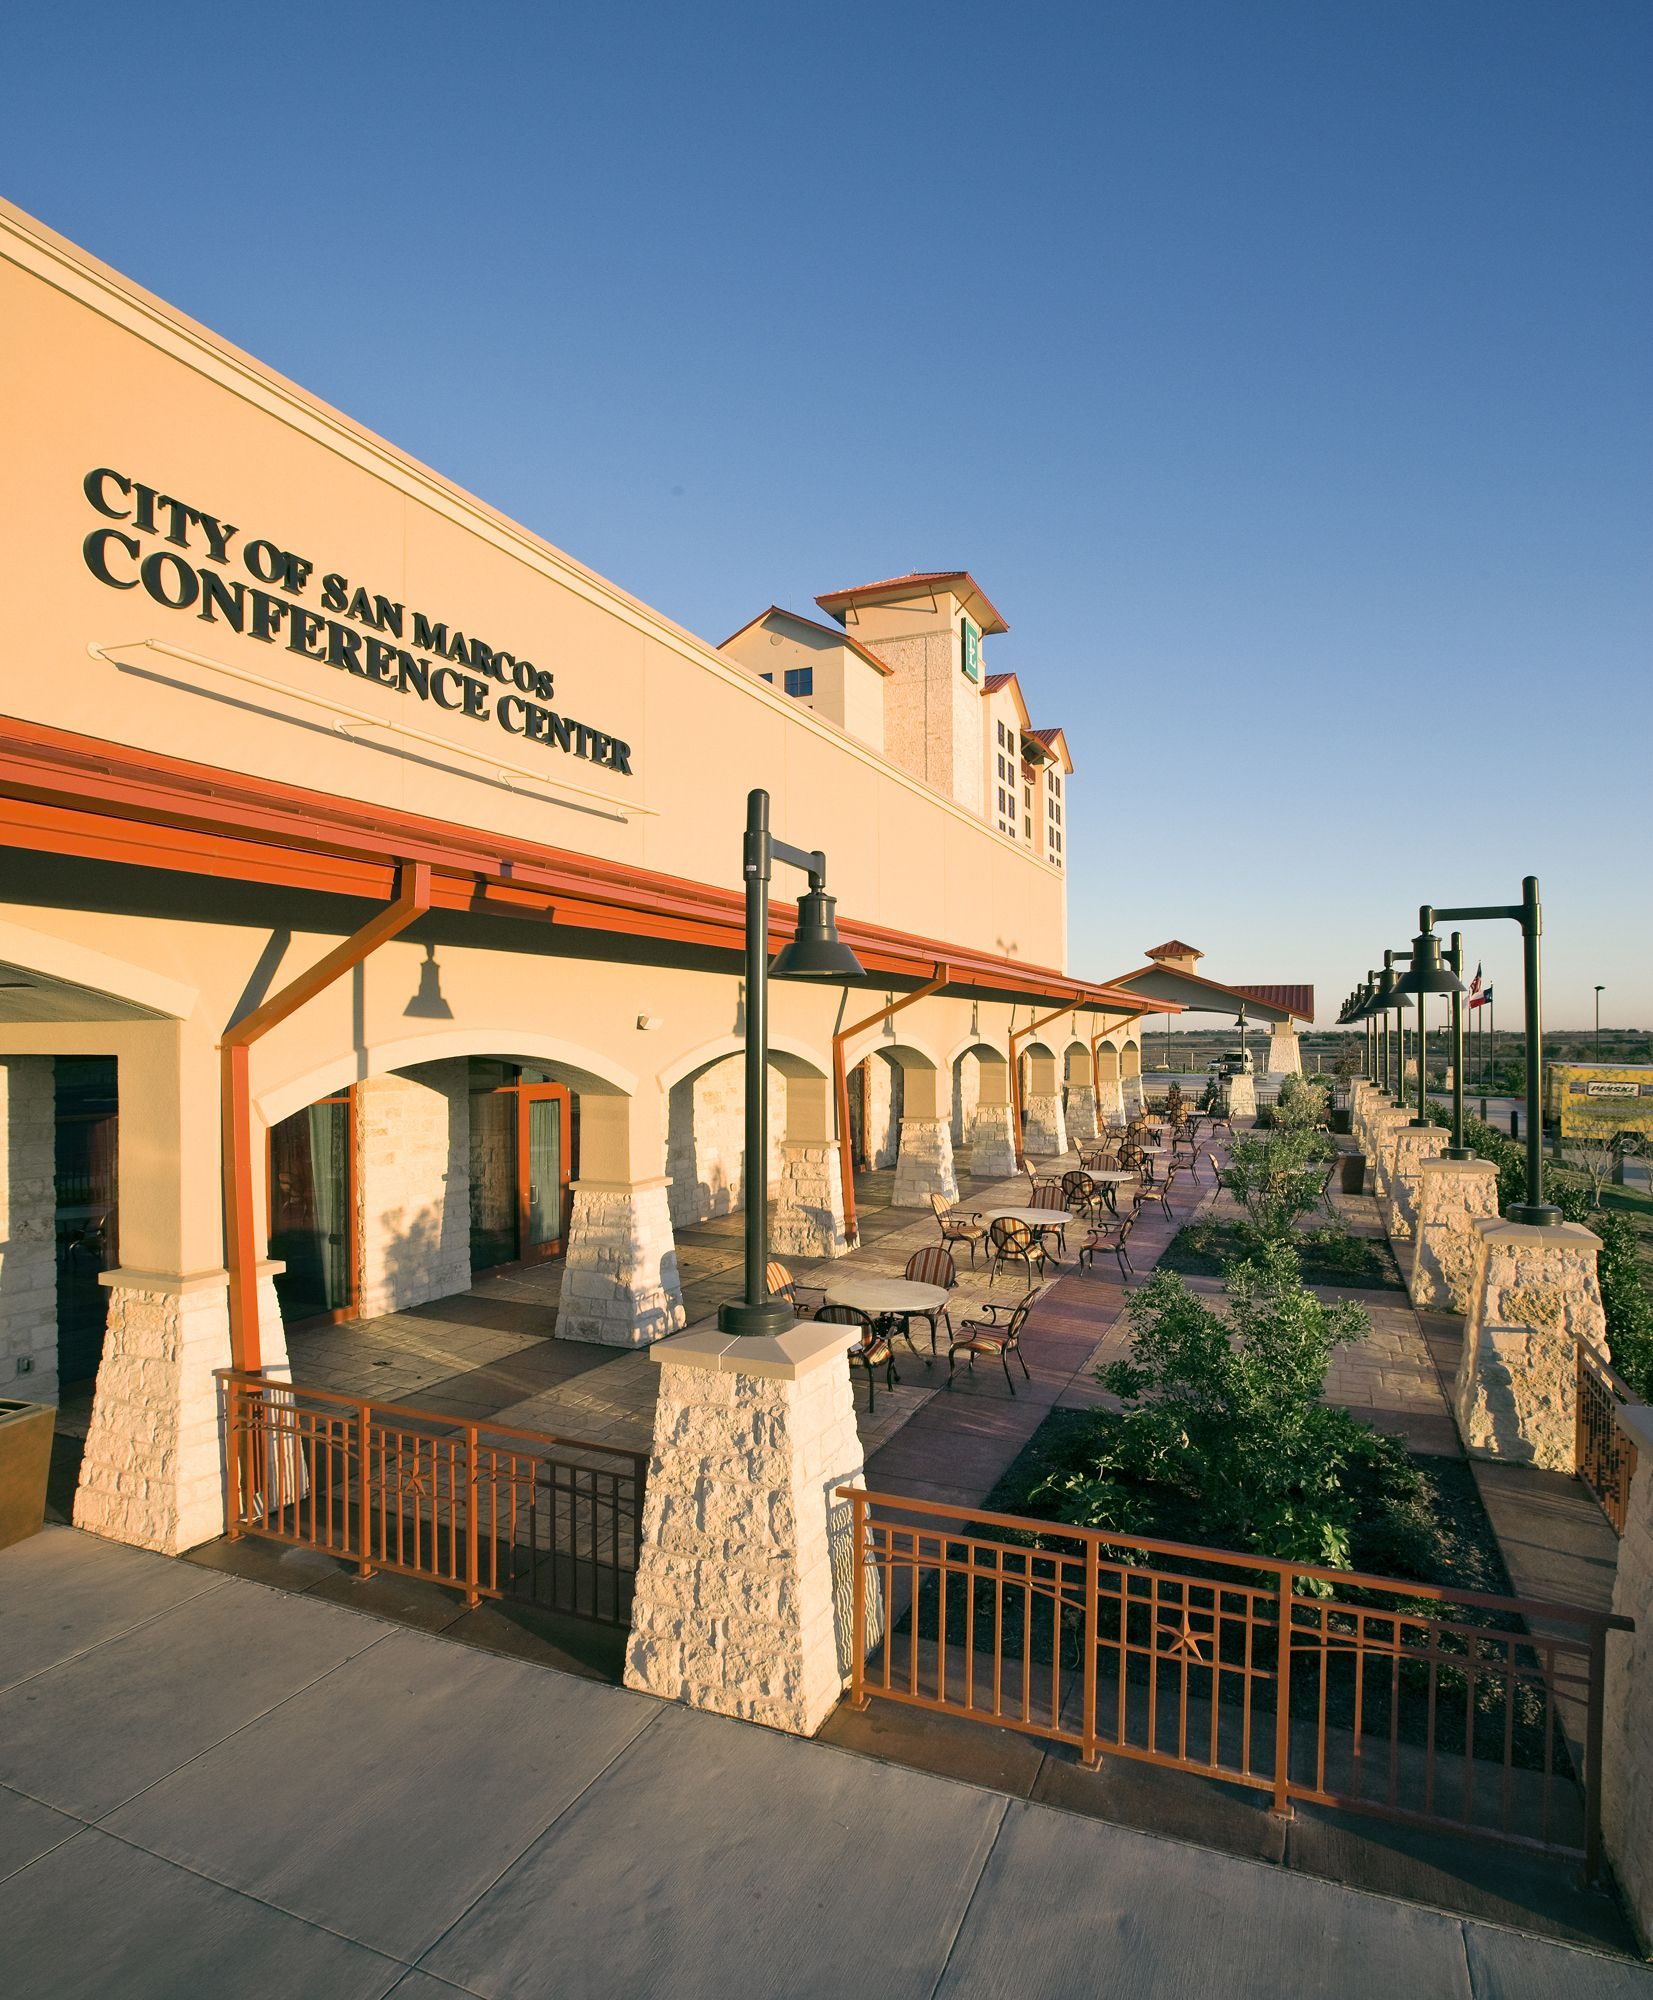 Embassy Suites Conference Center Exterior San Marcos Texas Design Hood Rich Architecture Hospitality Projects Outdoor Decor Embassy Suites